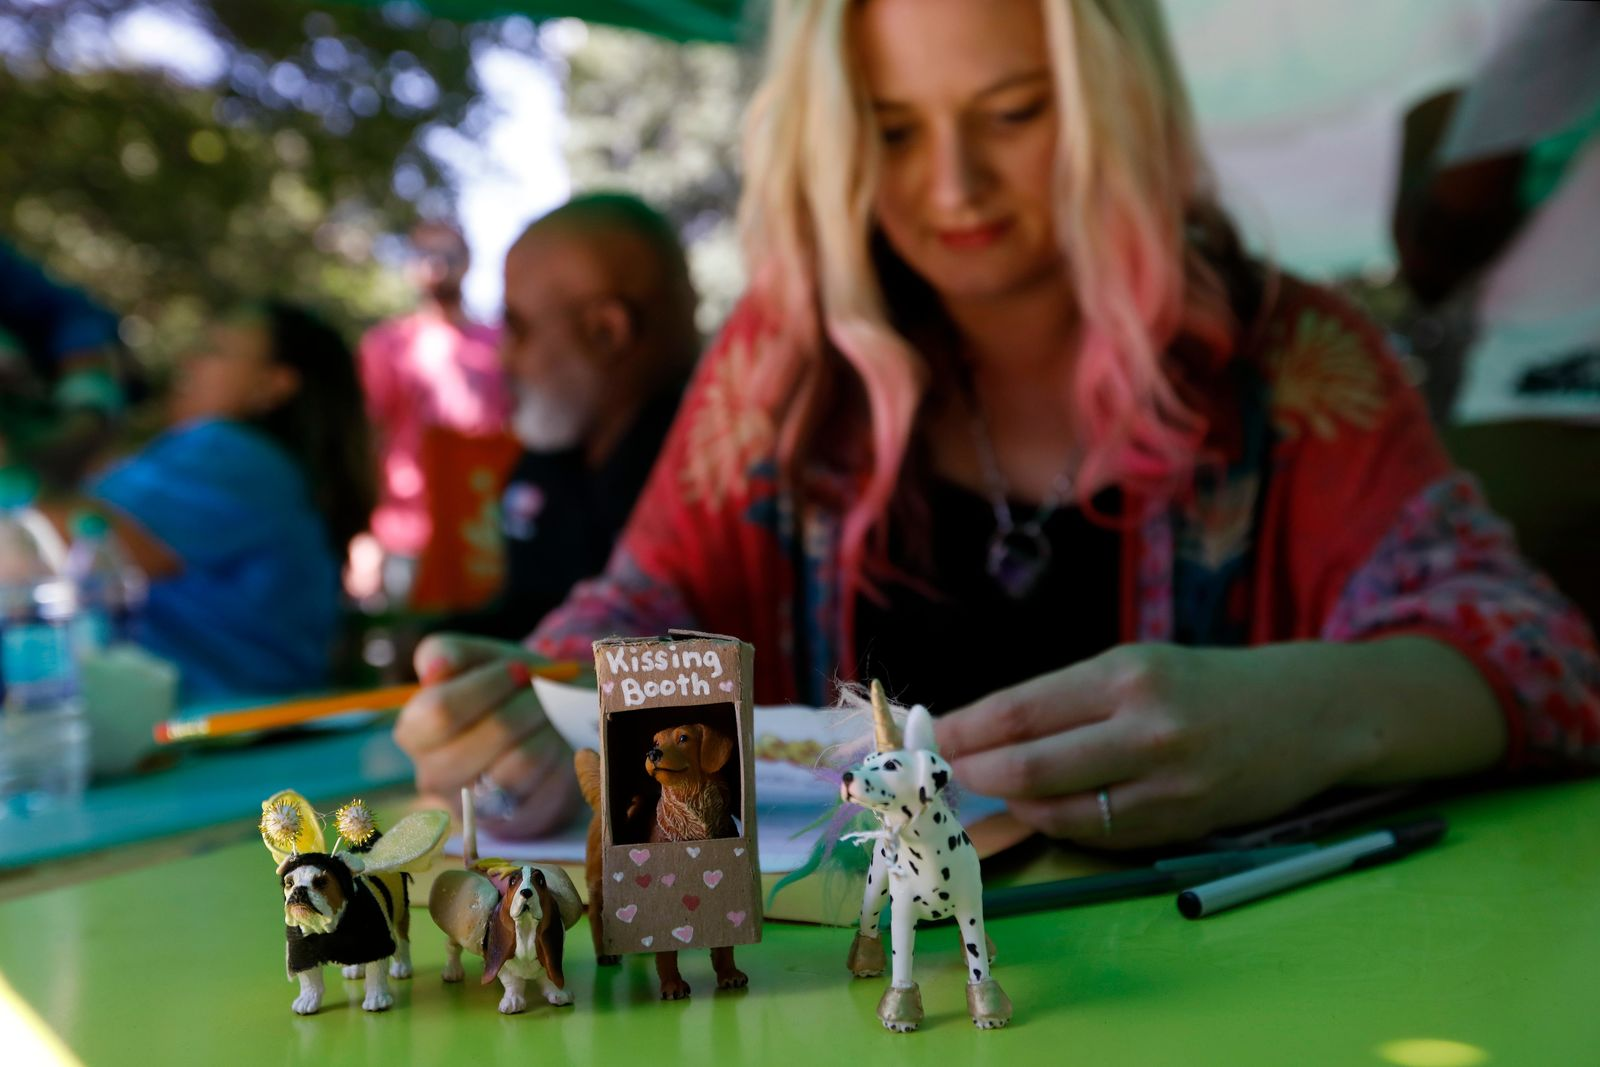 Karen Anderson Singer, a Doggy Con costume contest judge, reviews her notes before announcing the Tiny Doors Award winner, Saturday, Aug. 17, 2019, in Atlanta. Singer, an artist for the Atlanta-based community project Tiny Doors ATL, unveiled a Tiny Door installment in Woodruff Park after Doggy Con. (AP Photo/Andrea Smith)